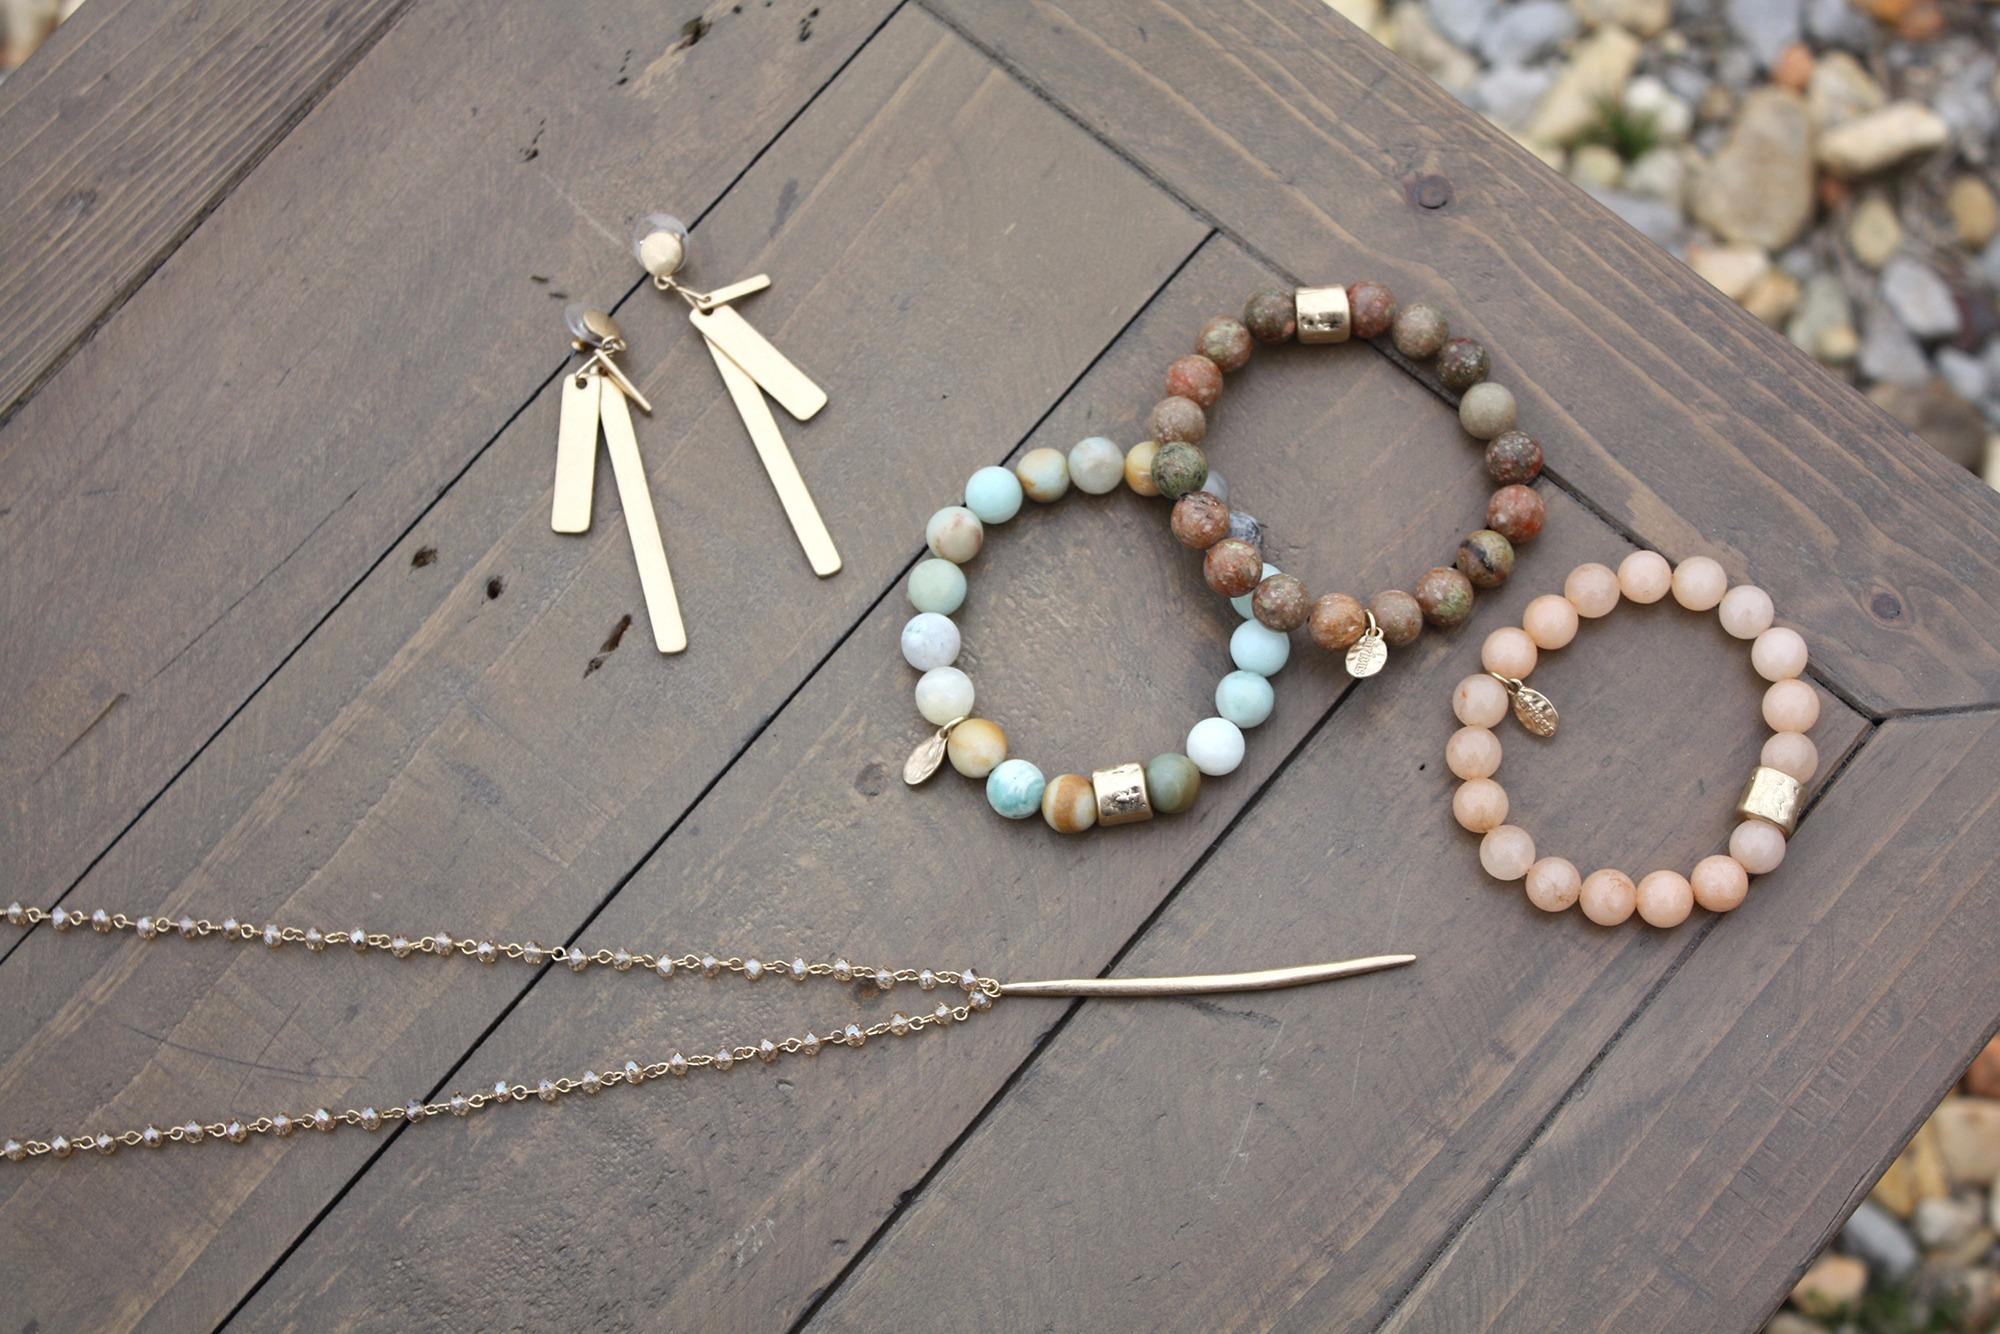 Wholesale boho jewelry.